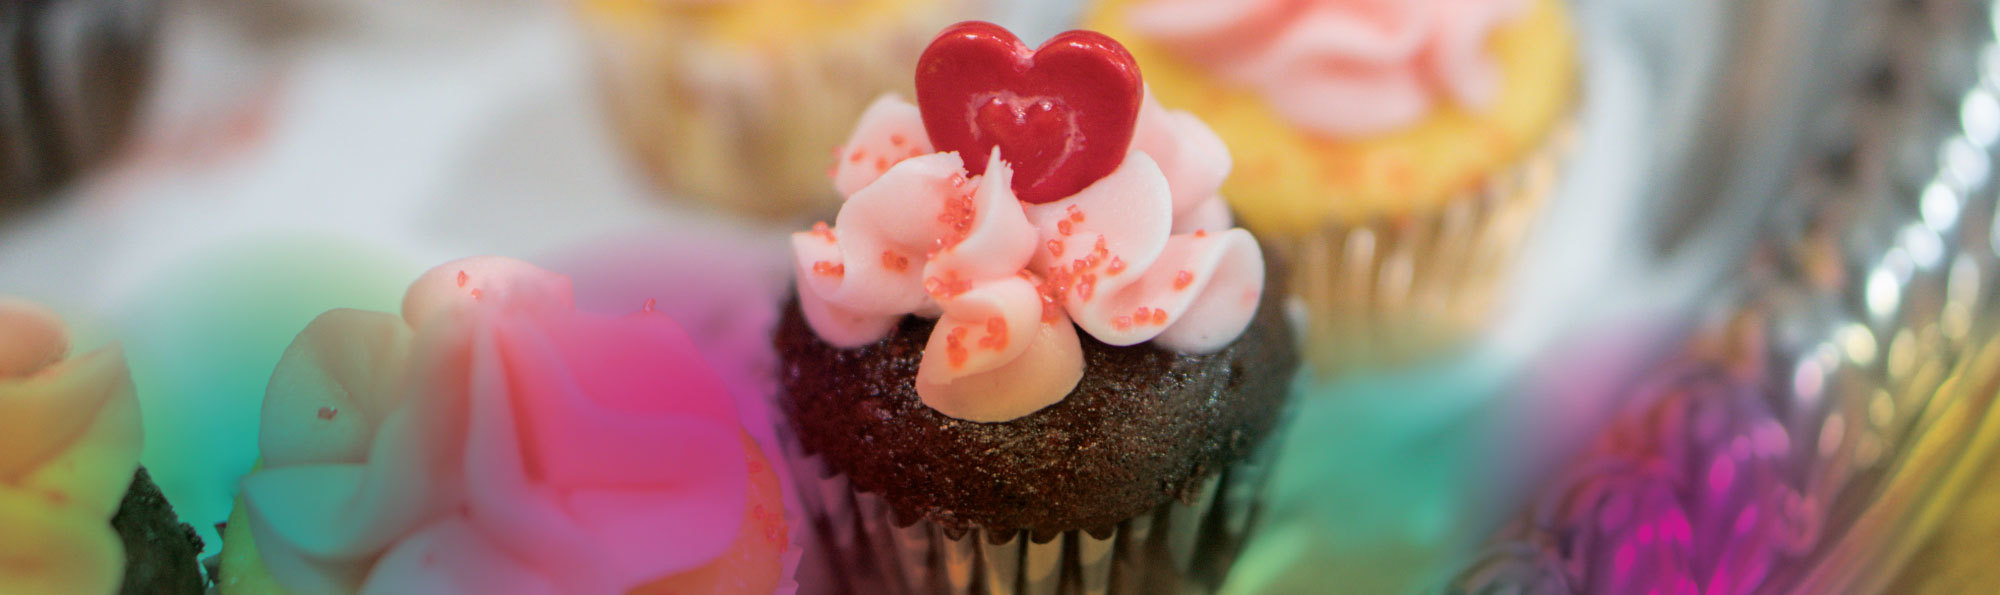 Cakes with heart decoration